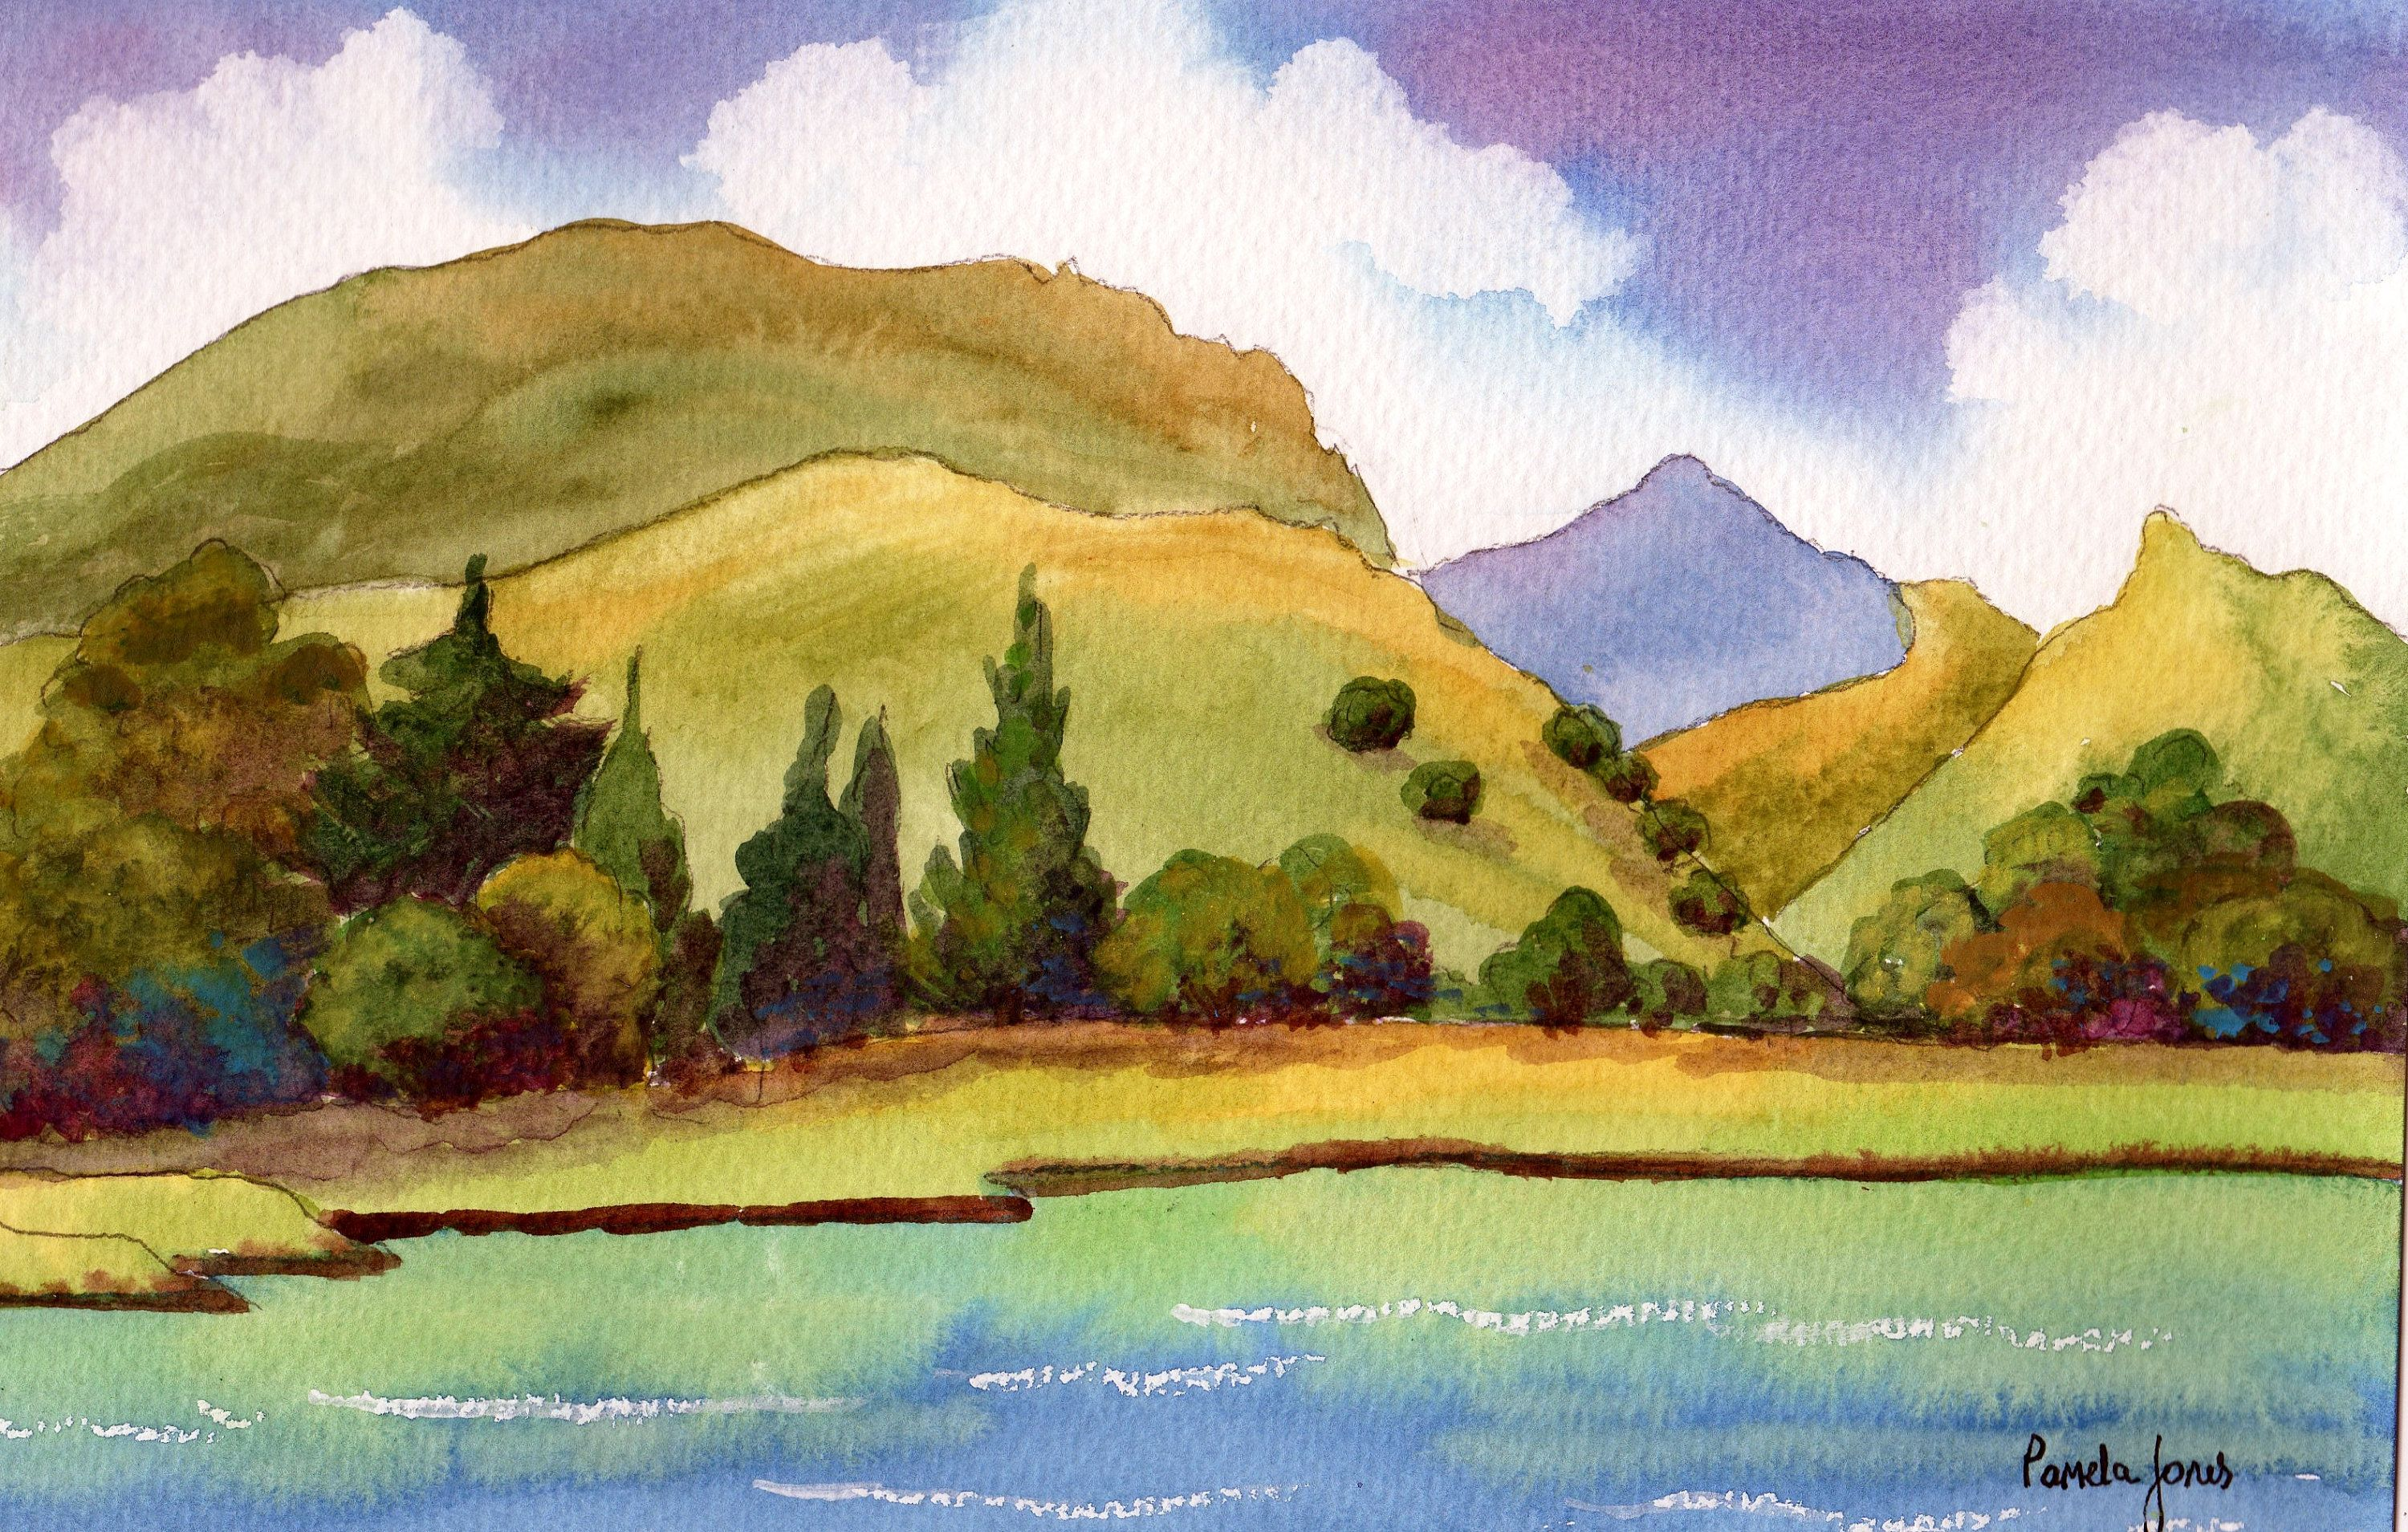 Original Watercolour, Painting, Nantlle Lake, Snowdonia, North Wales, 14 x 11 ins, Gift Idea, Art and Collectibles, Home and Living #northwales